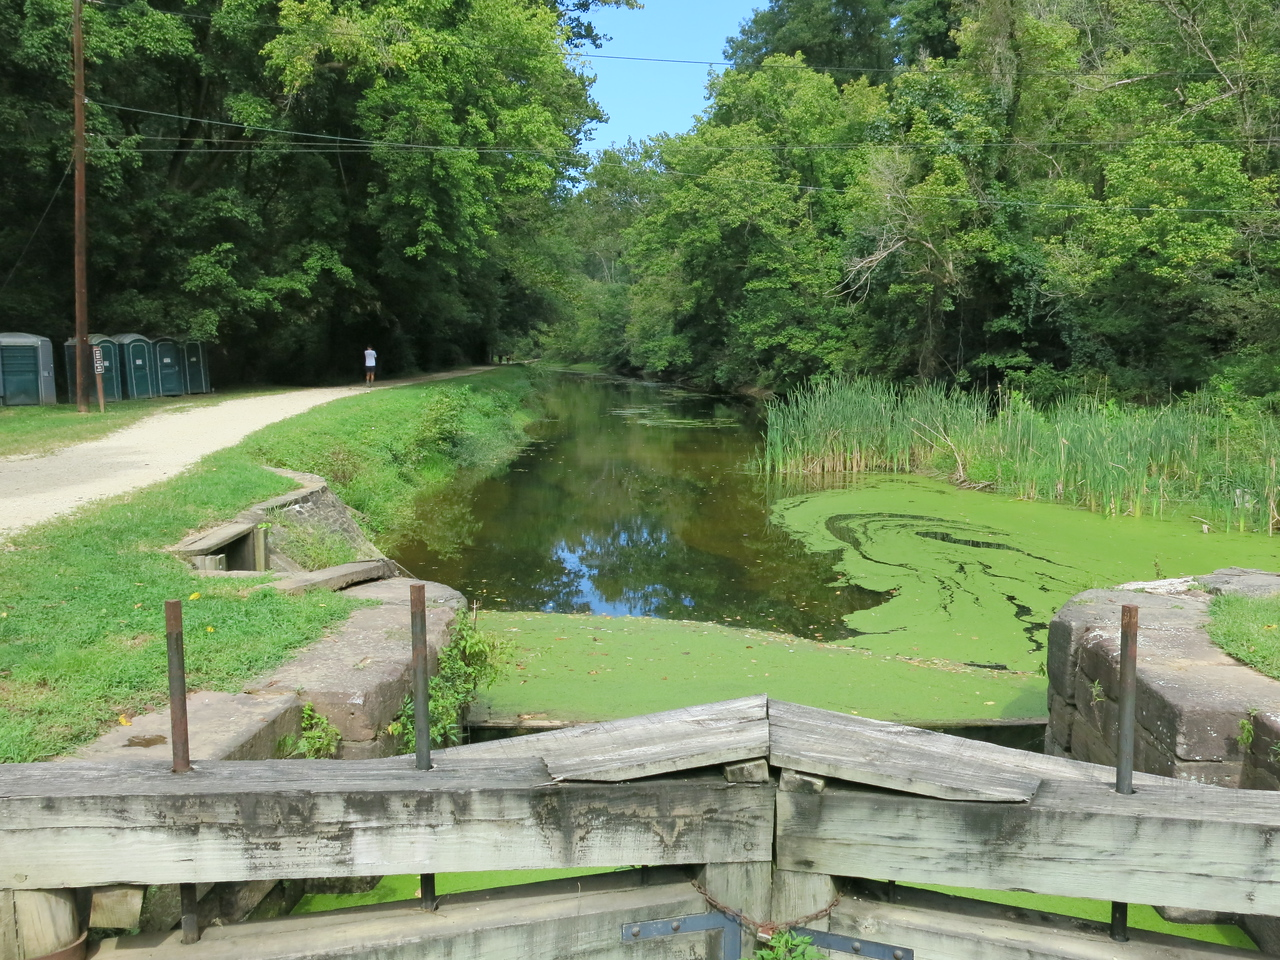 An upstream view of the Canal from Lock 21